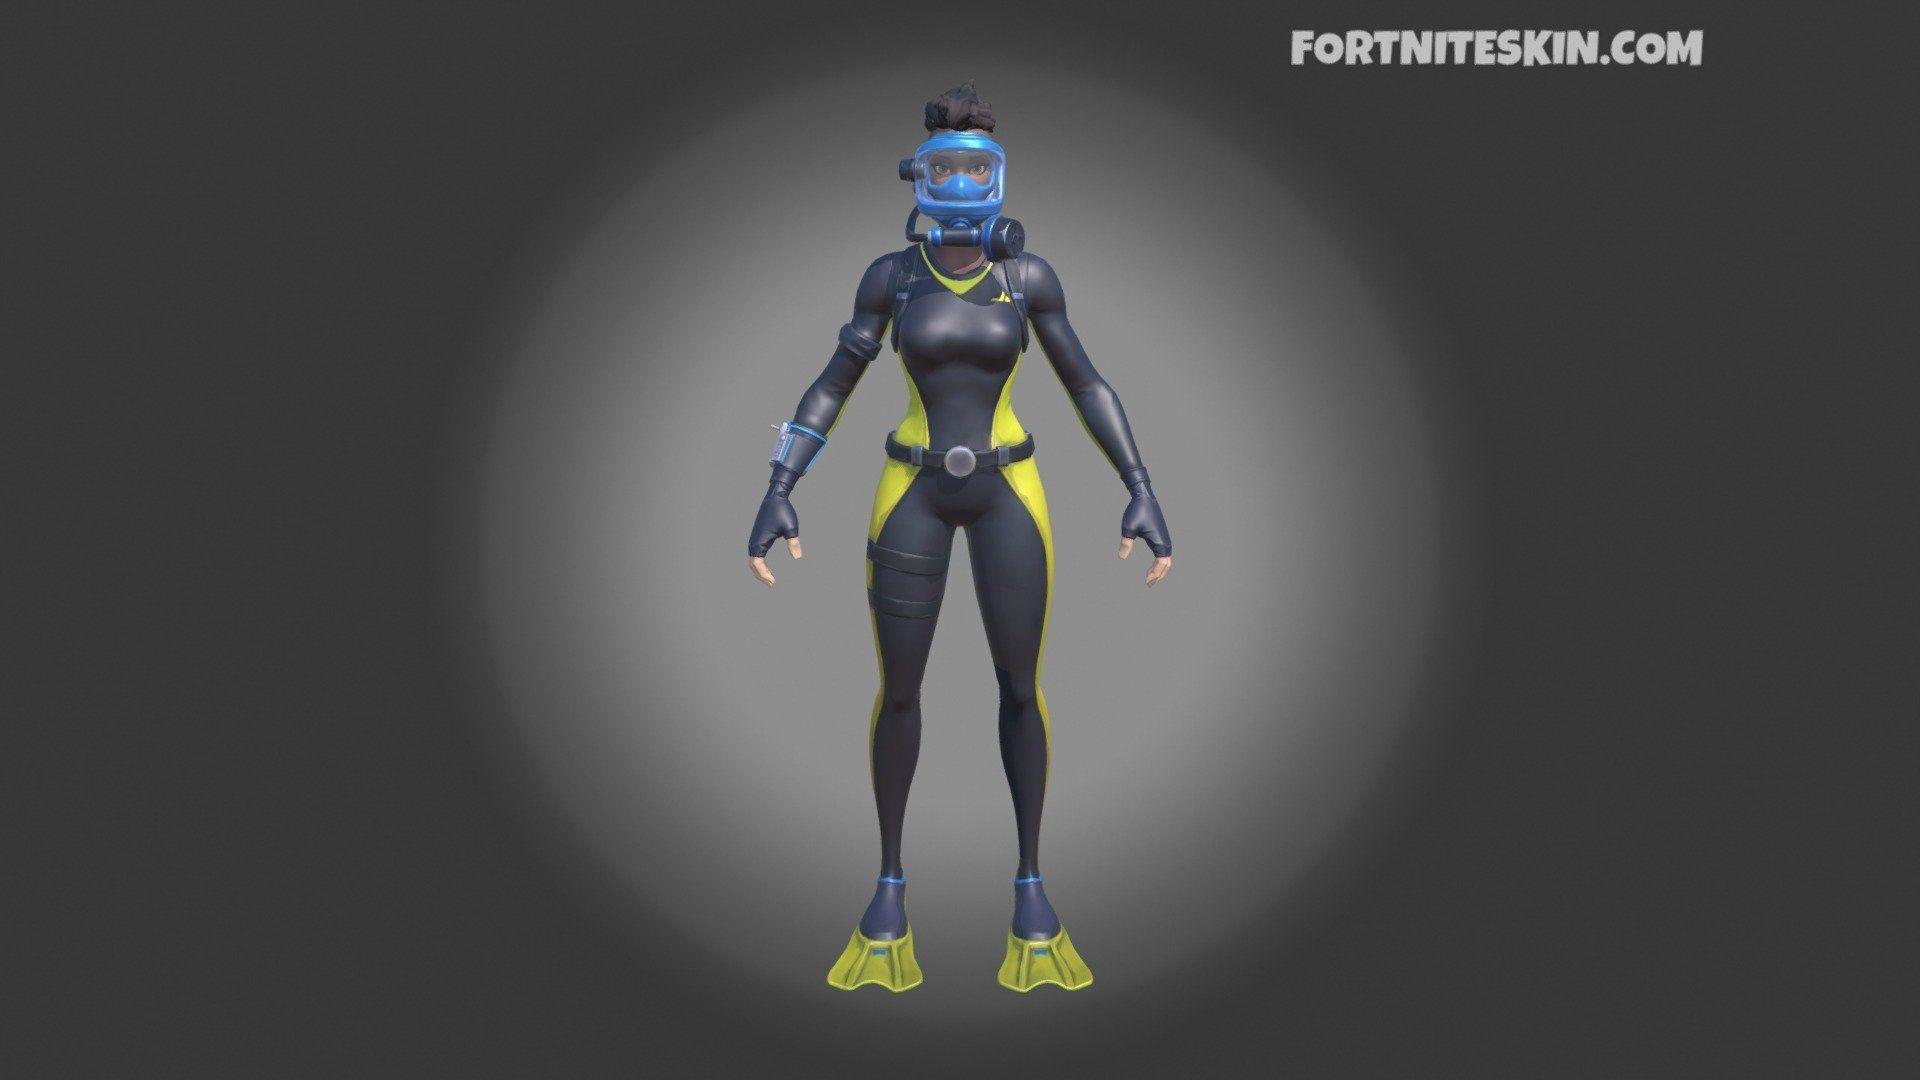 3D models tagged fortnite